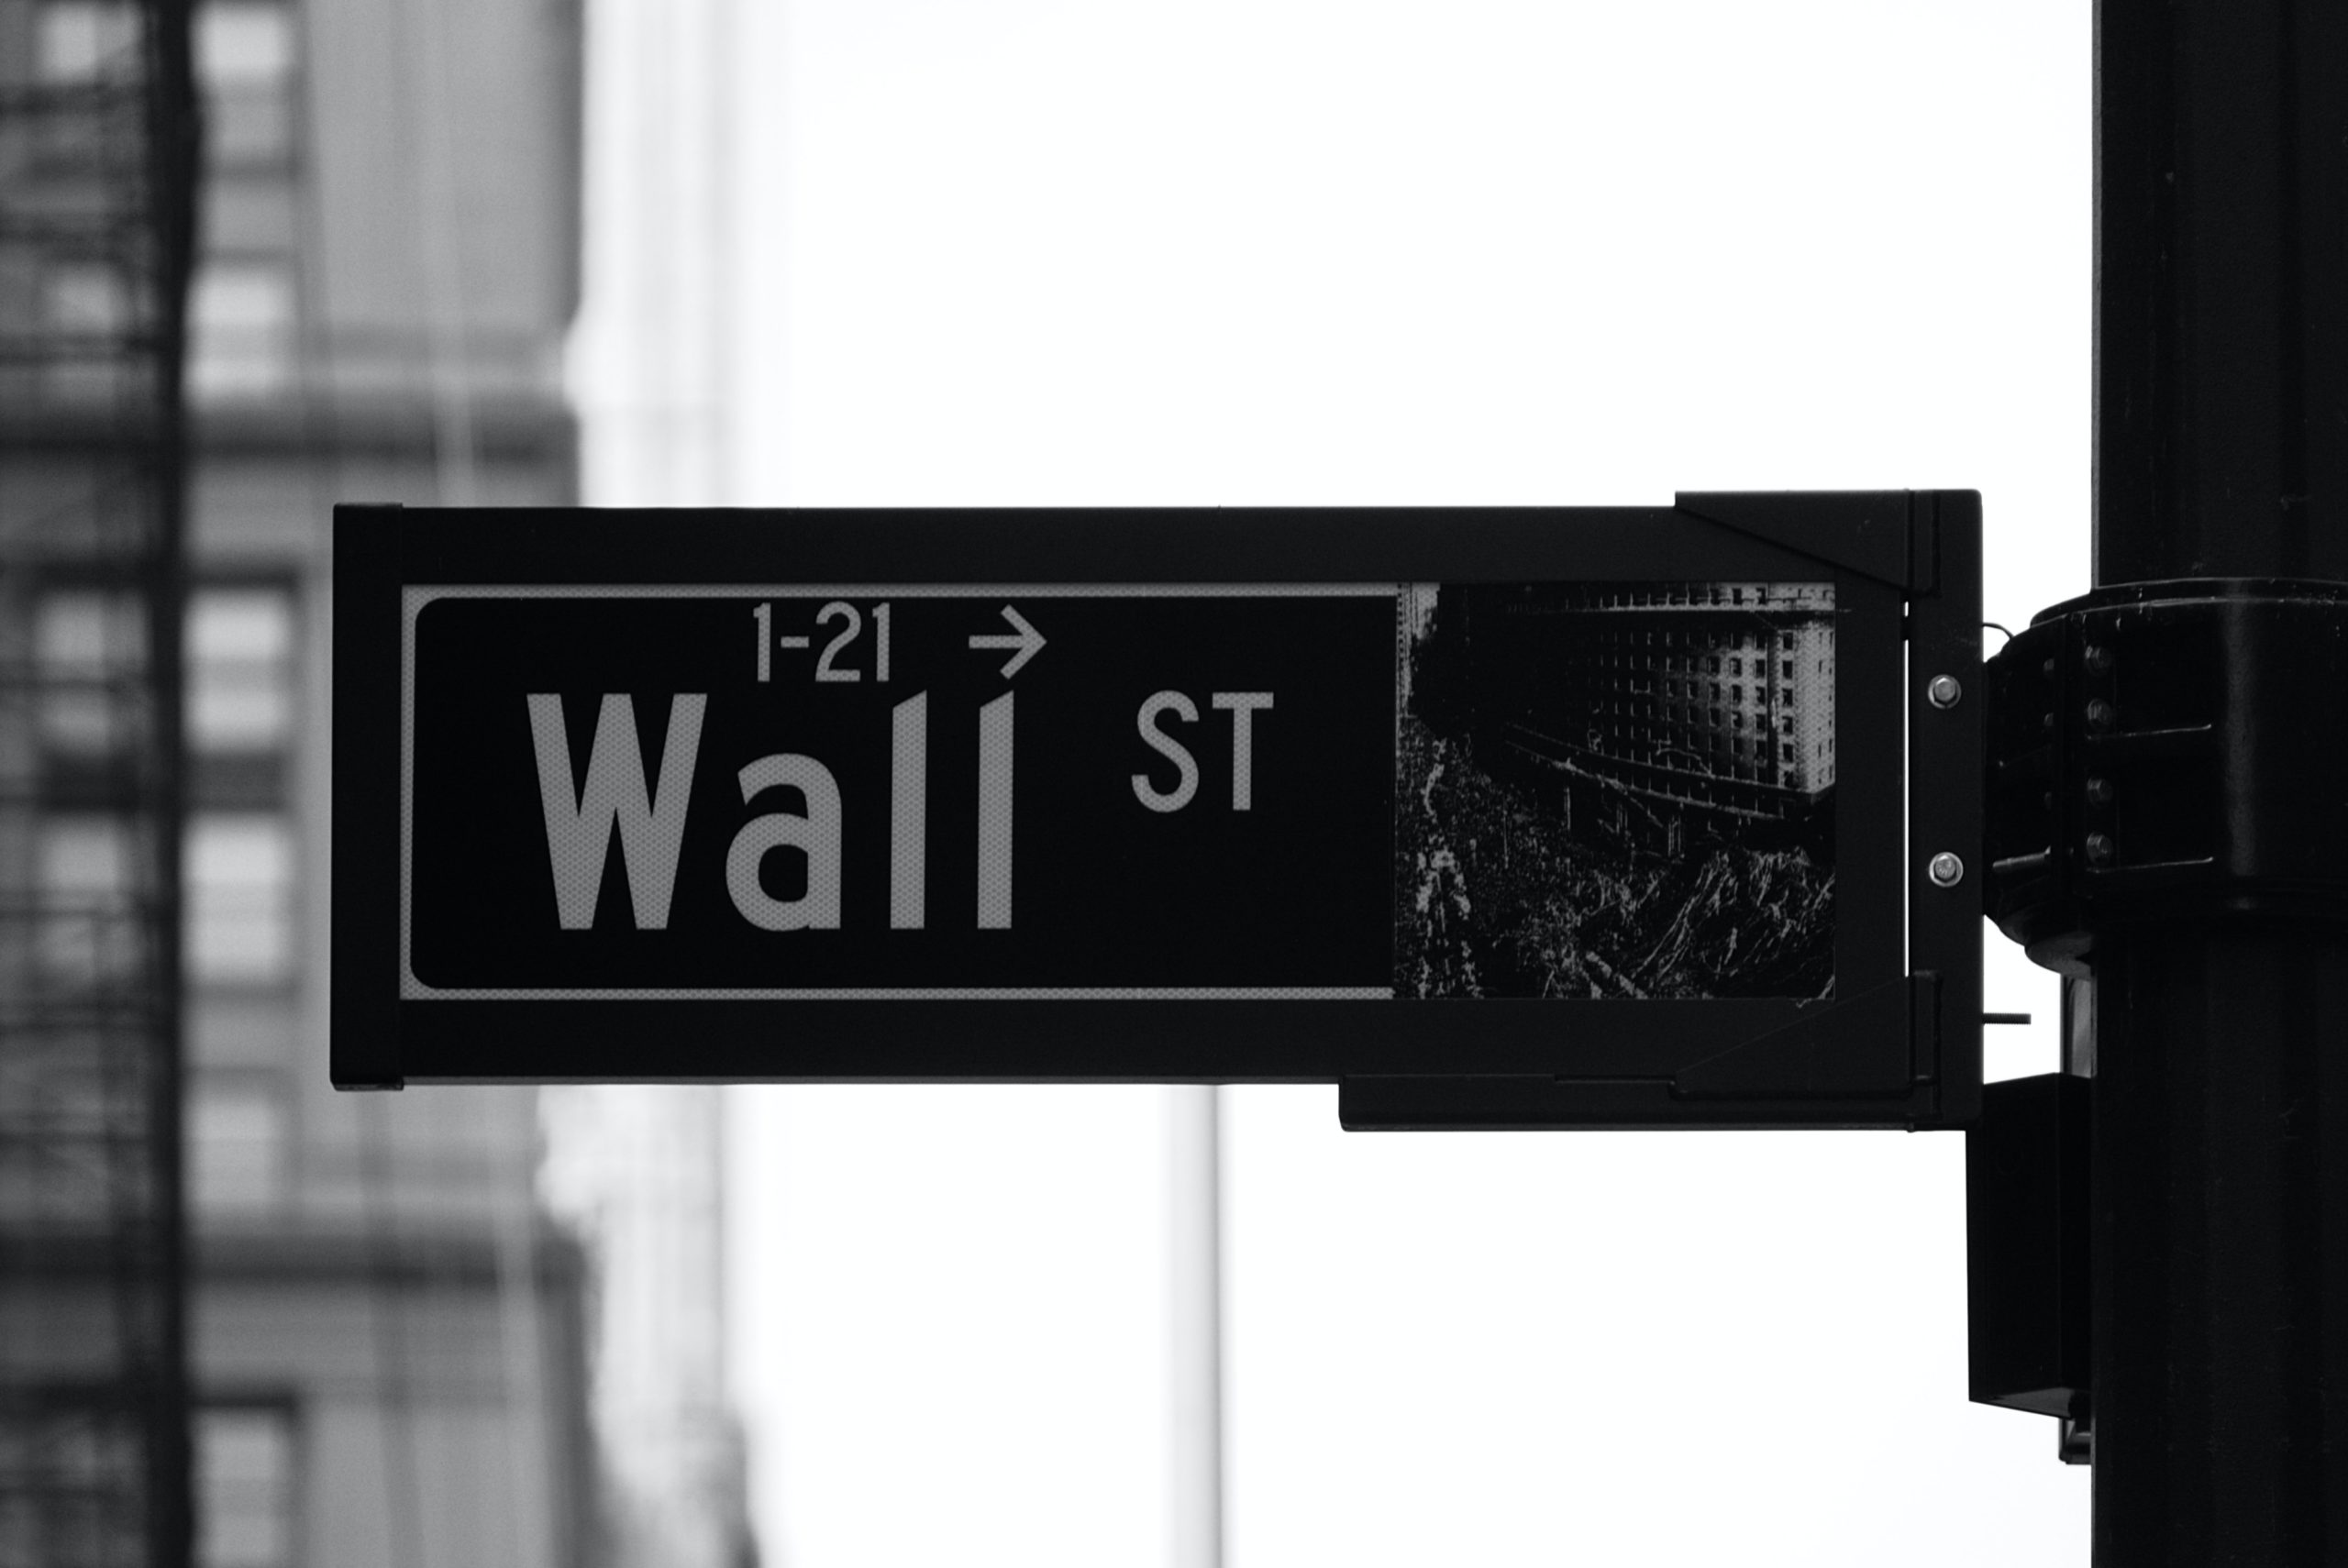 A Wall Street Sign in NYC